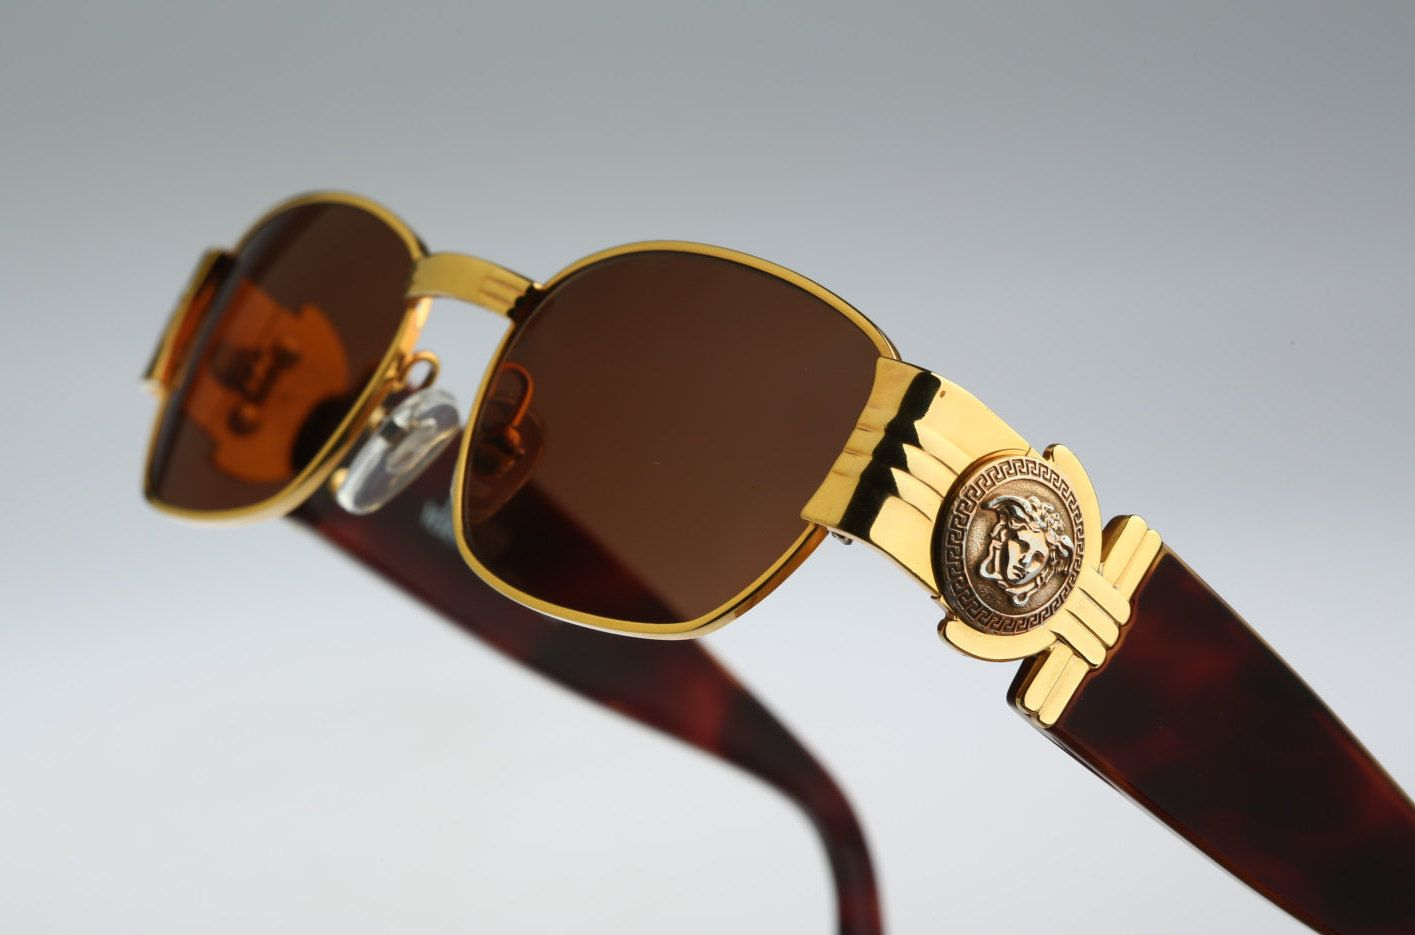 Gianni Versace Mod S73 / Vintage sunglasses / NOS / 90s and all time being luxury! by CarettaVintage on Etsy